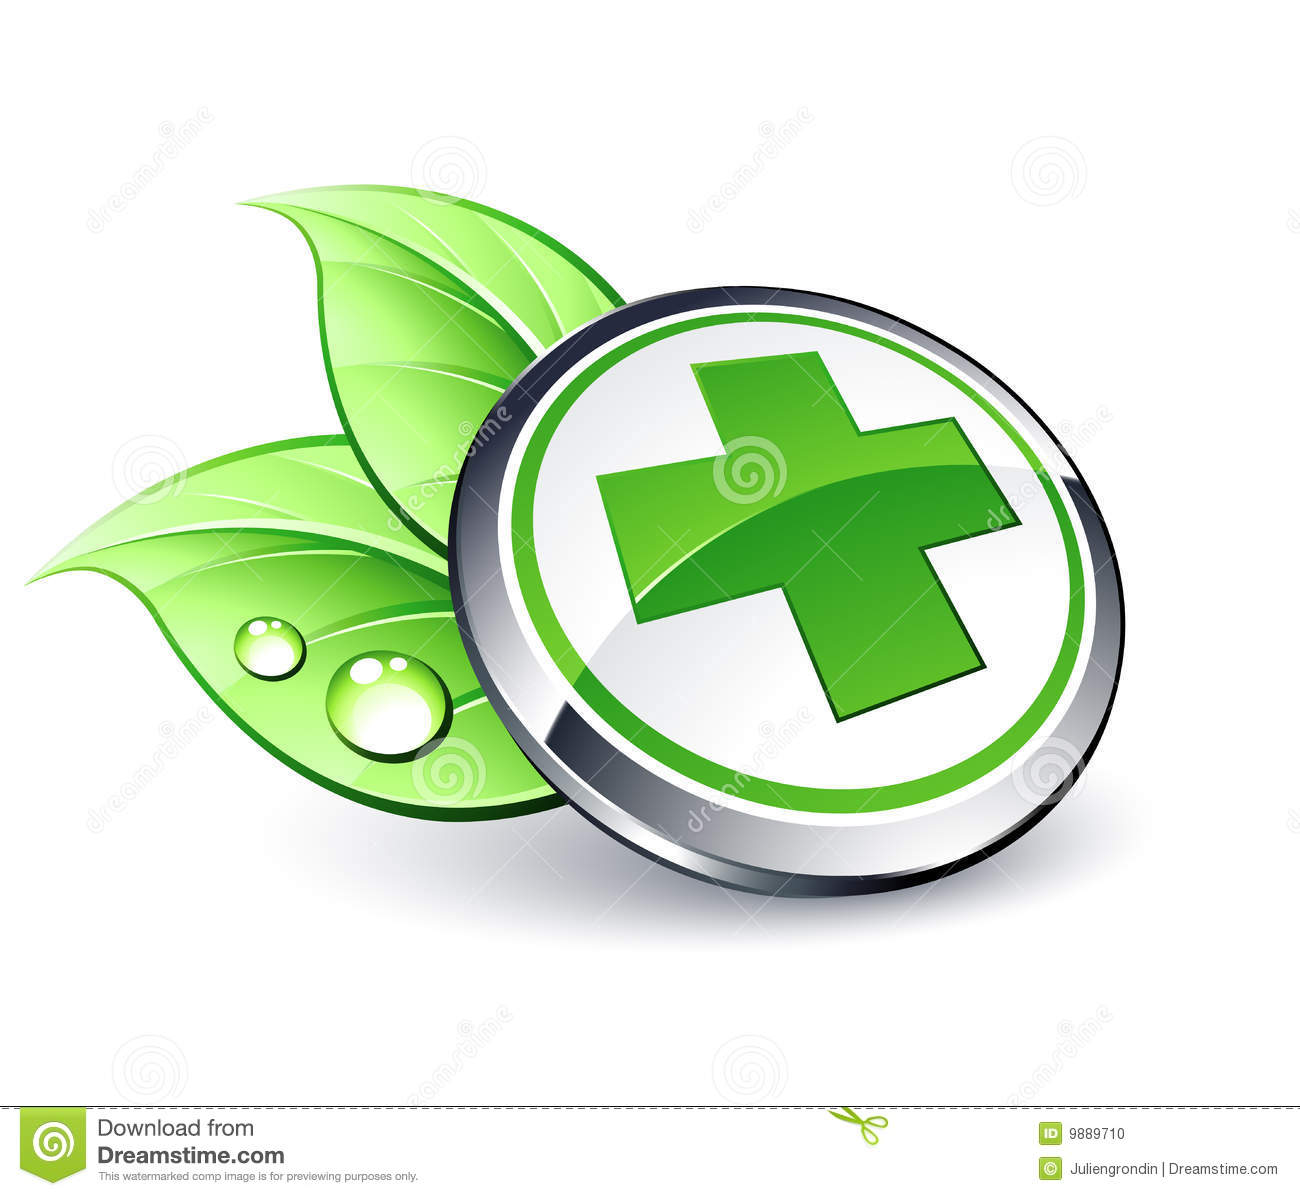 Alternative medical clipart - Clipground